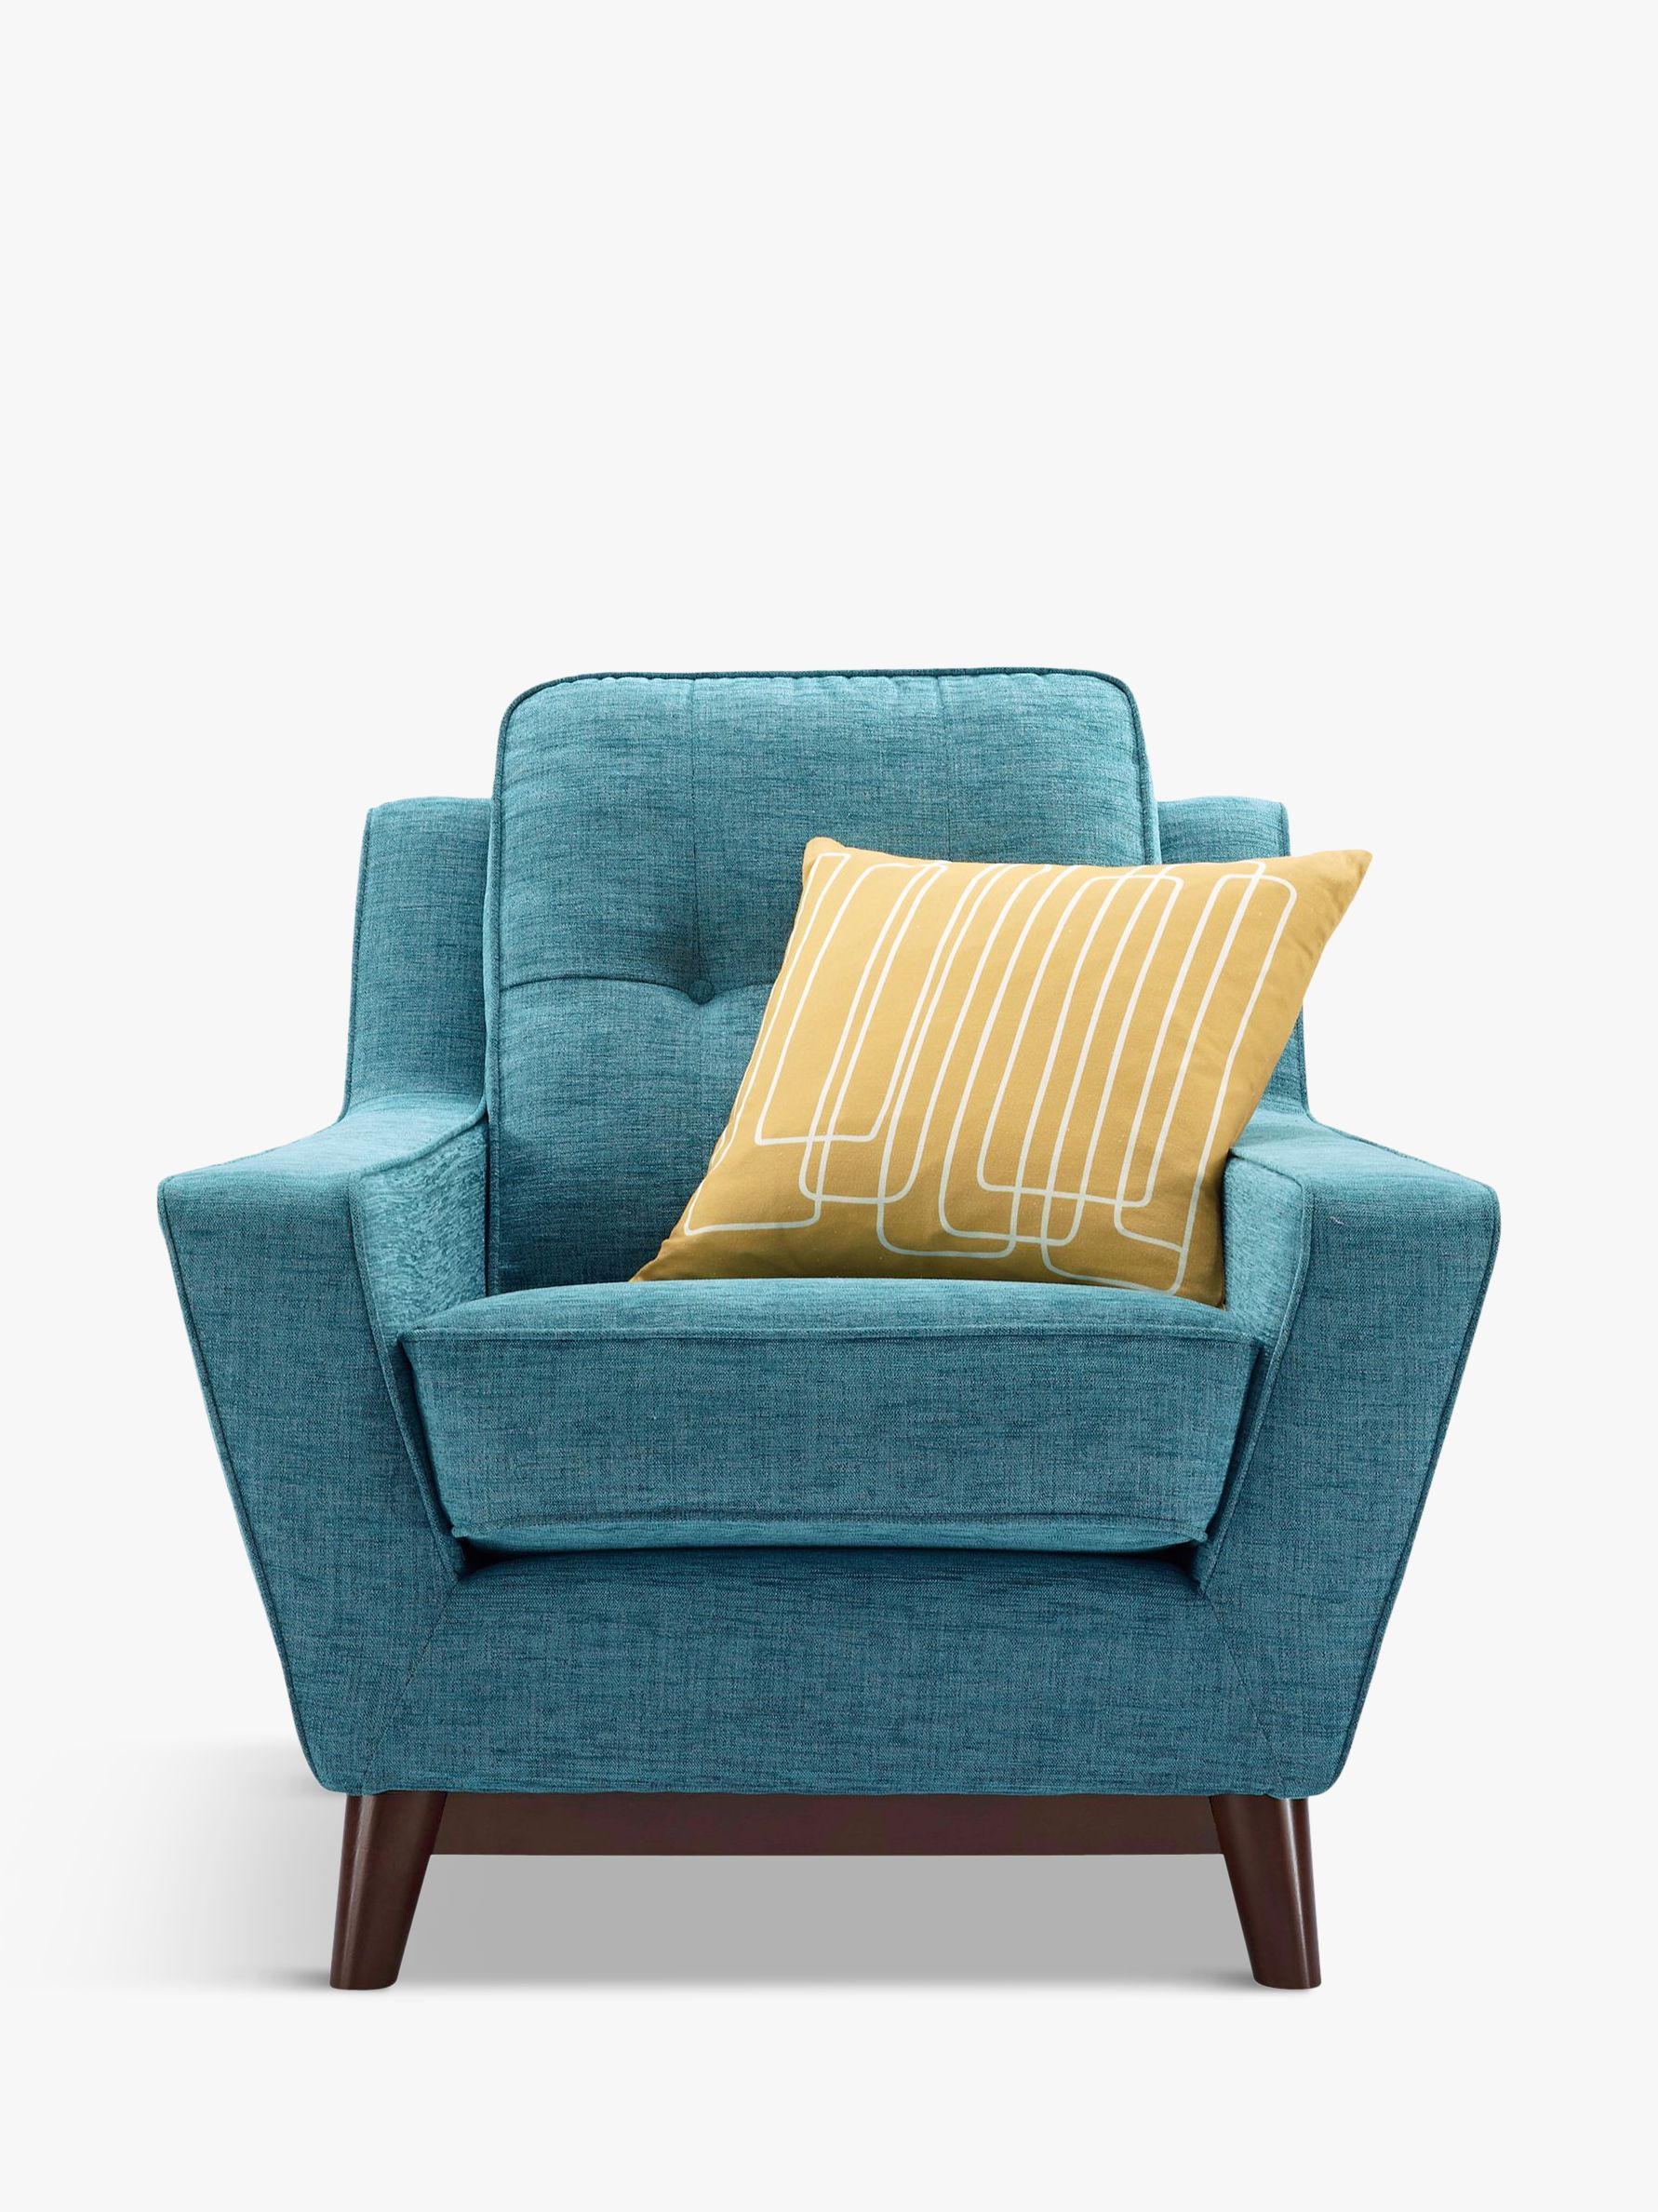 G Plan Vintage The Fifty Three Armchair, Fleck Blue